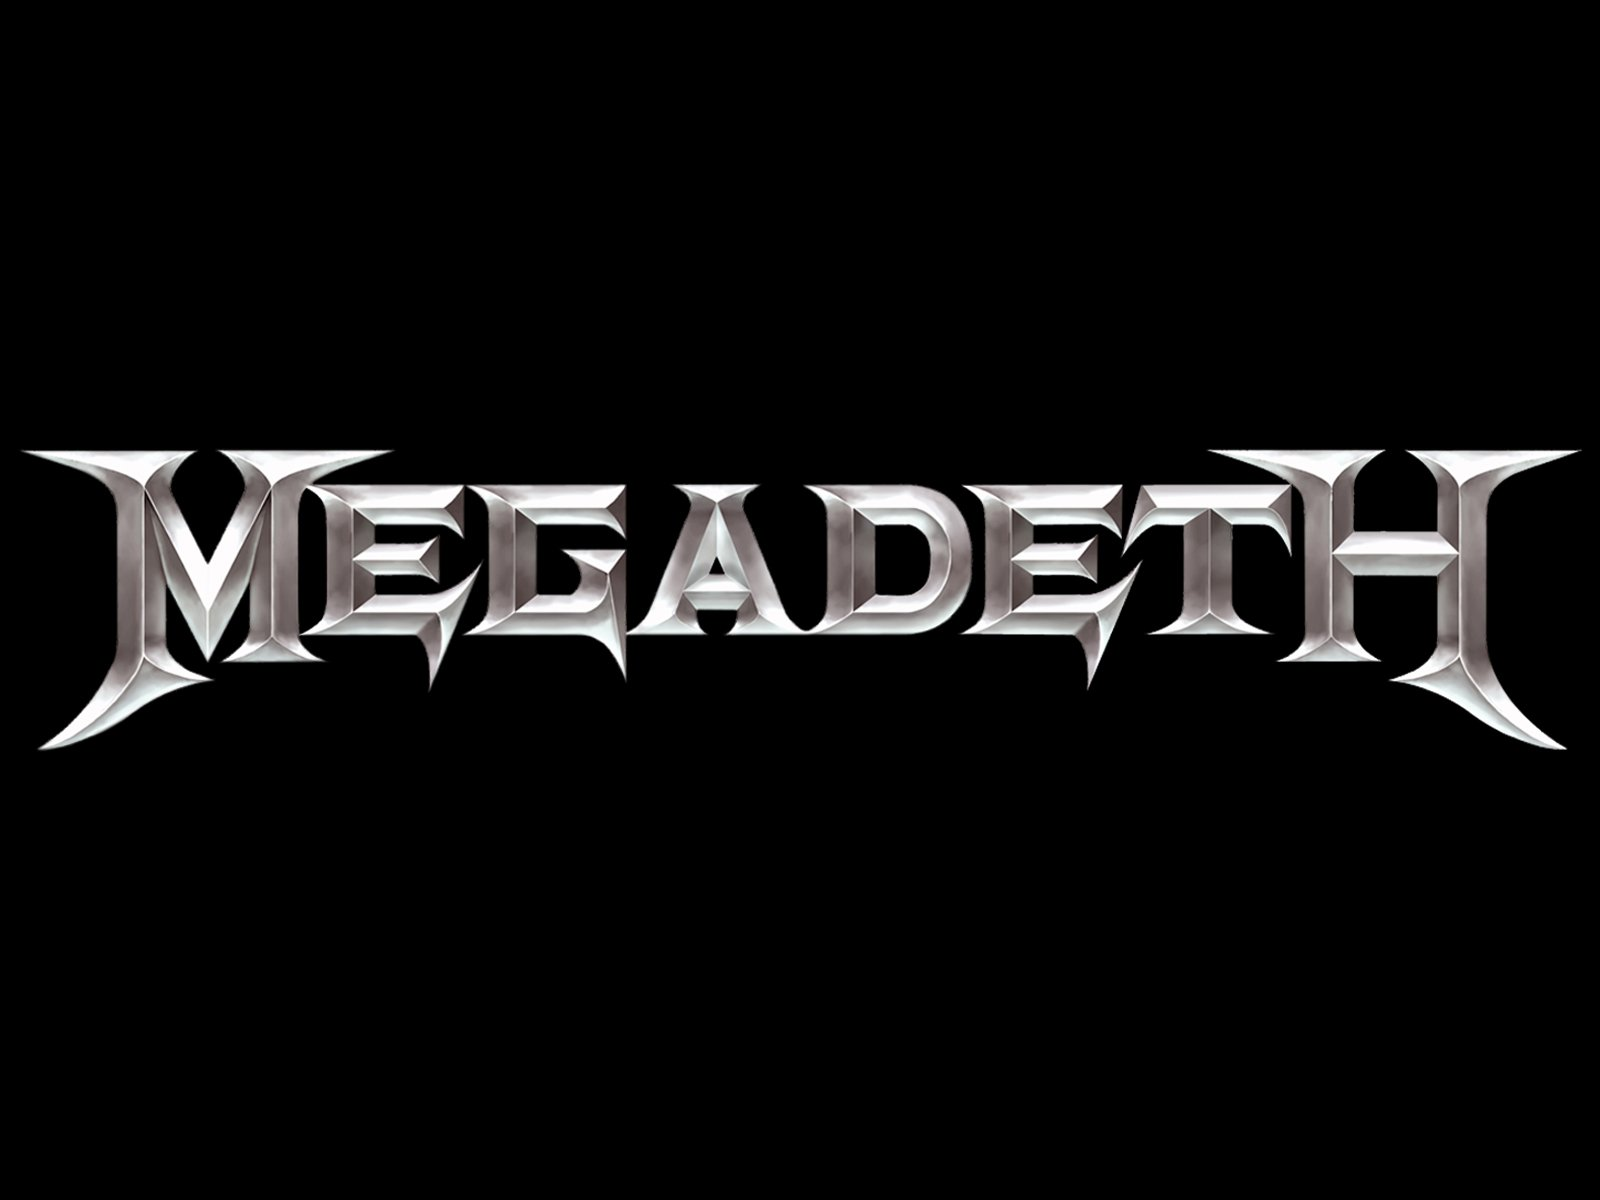 Top 10 Megadeth Songs (Ranked)